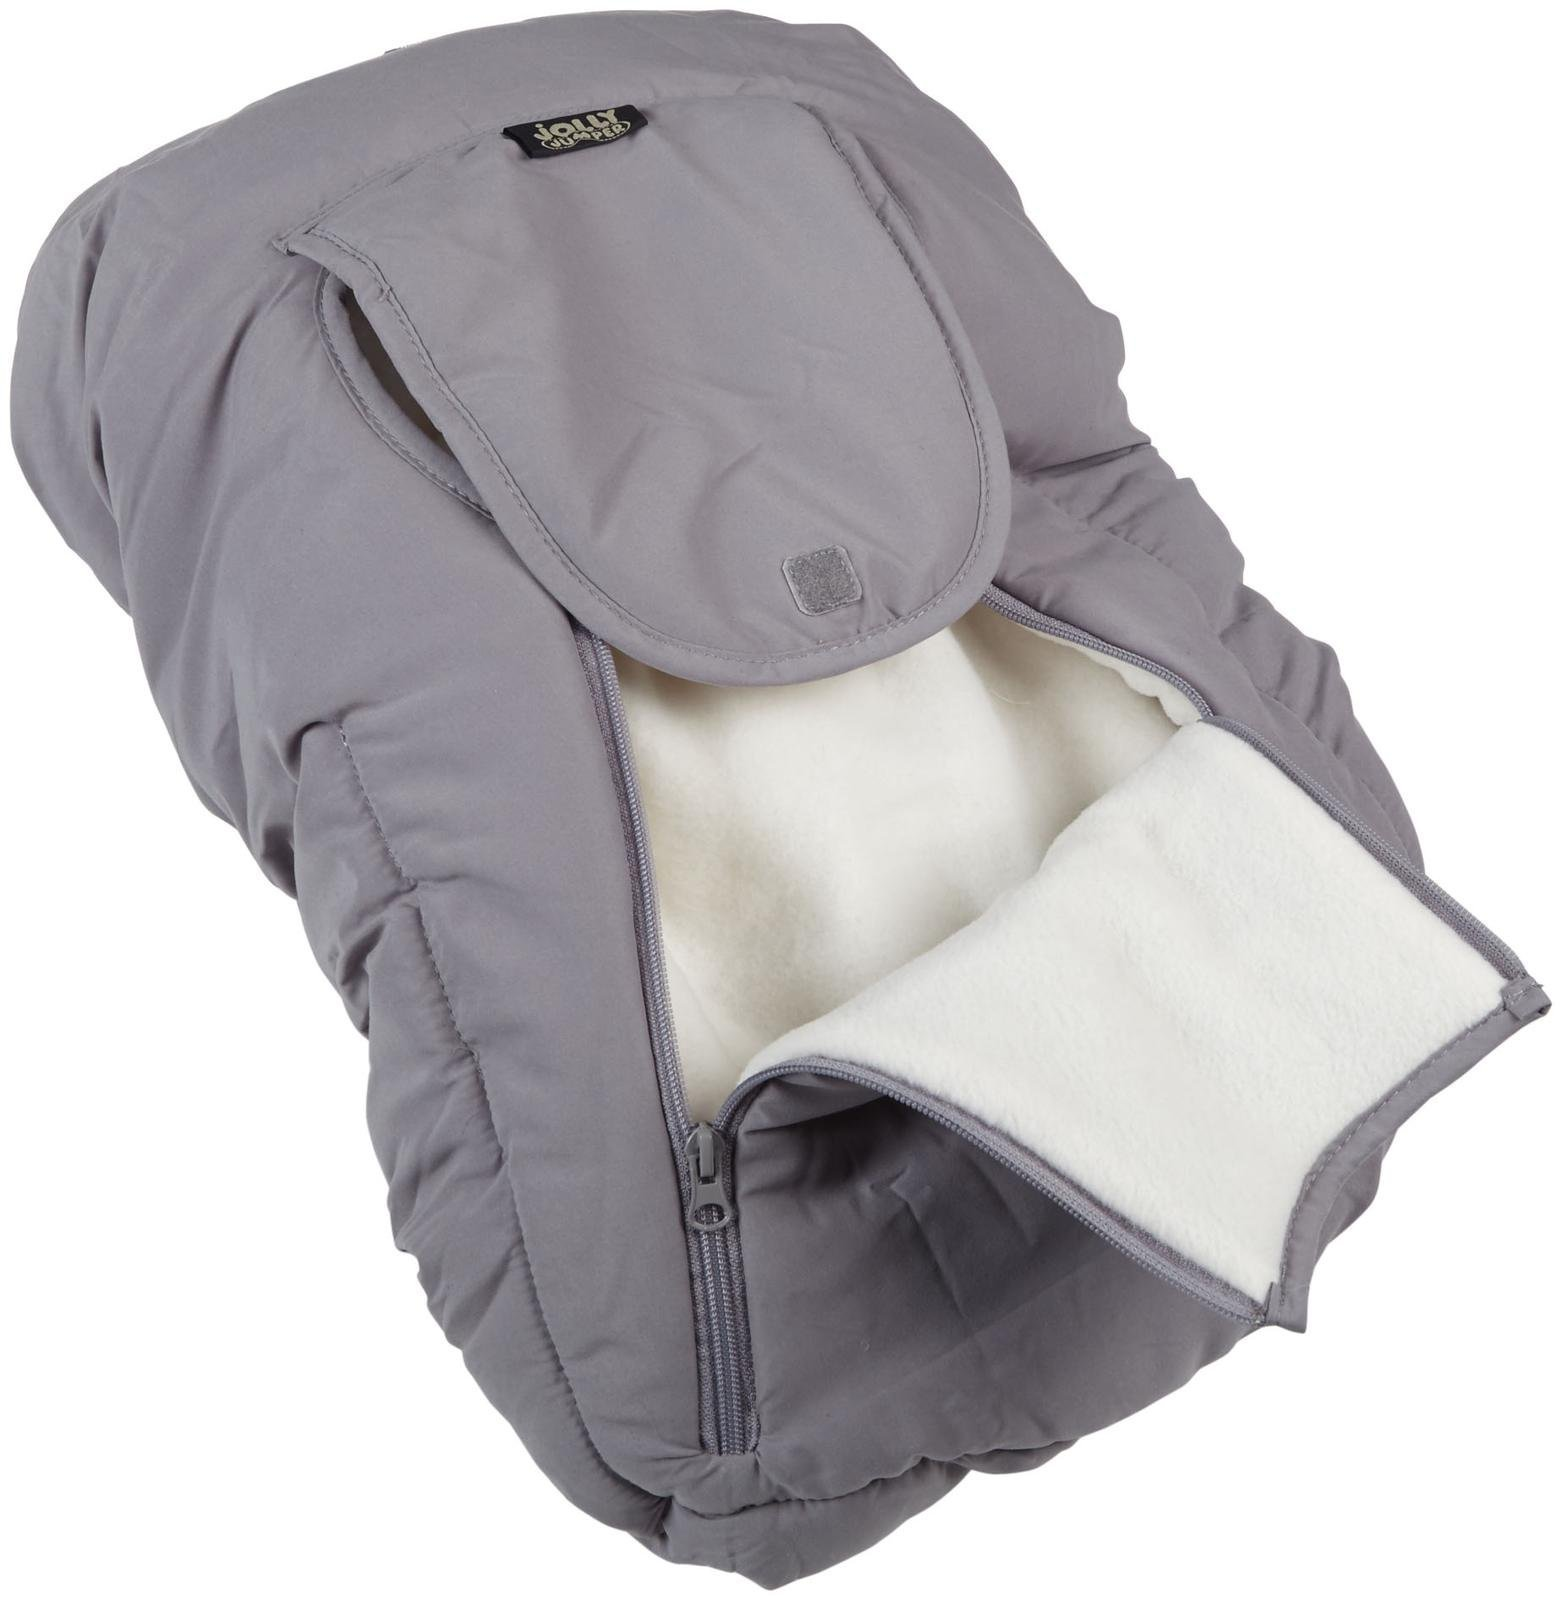 Jolly Jumper Arctic Sneak A Peek Car Seat Cover With Attached Blanket